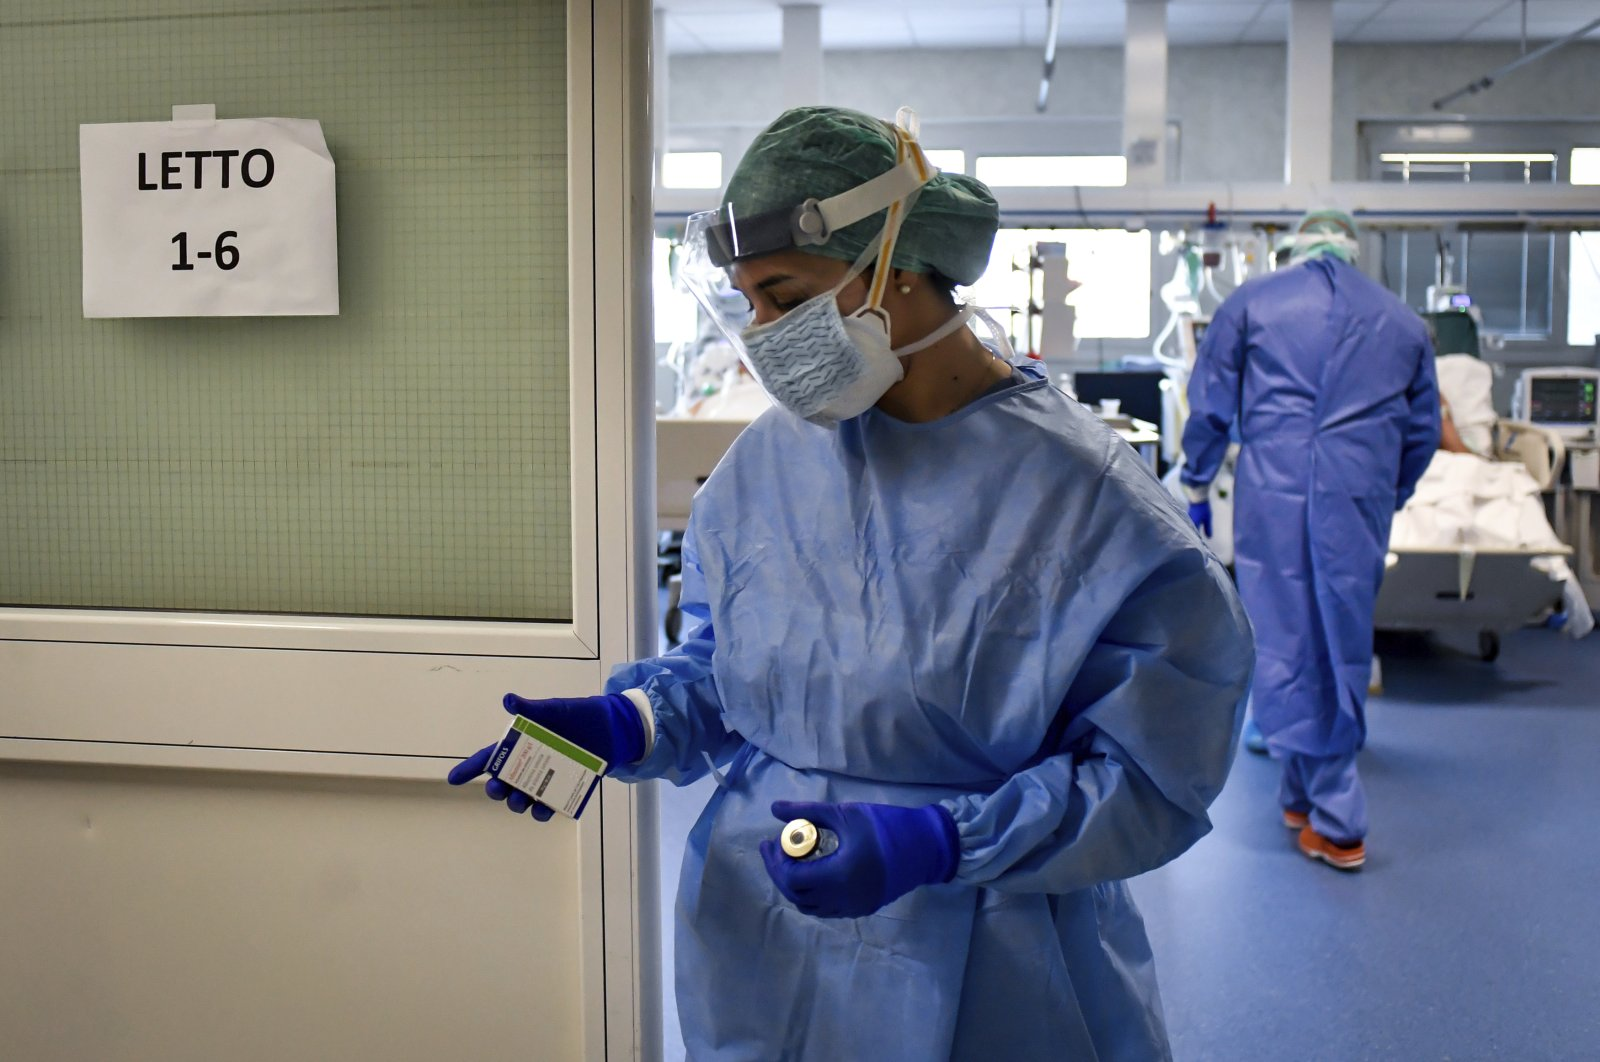 A nurse leaves the intensive care unit of the hospital of Brescia, Italy, Thursday, March 19, 2020. (LaPresse via AP)